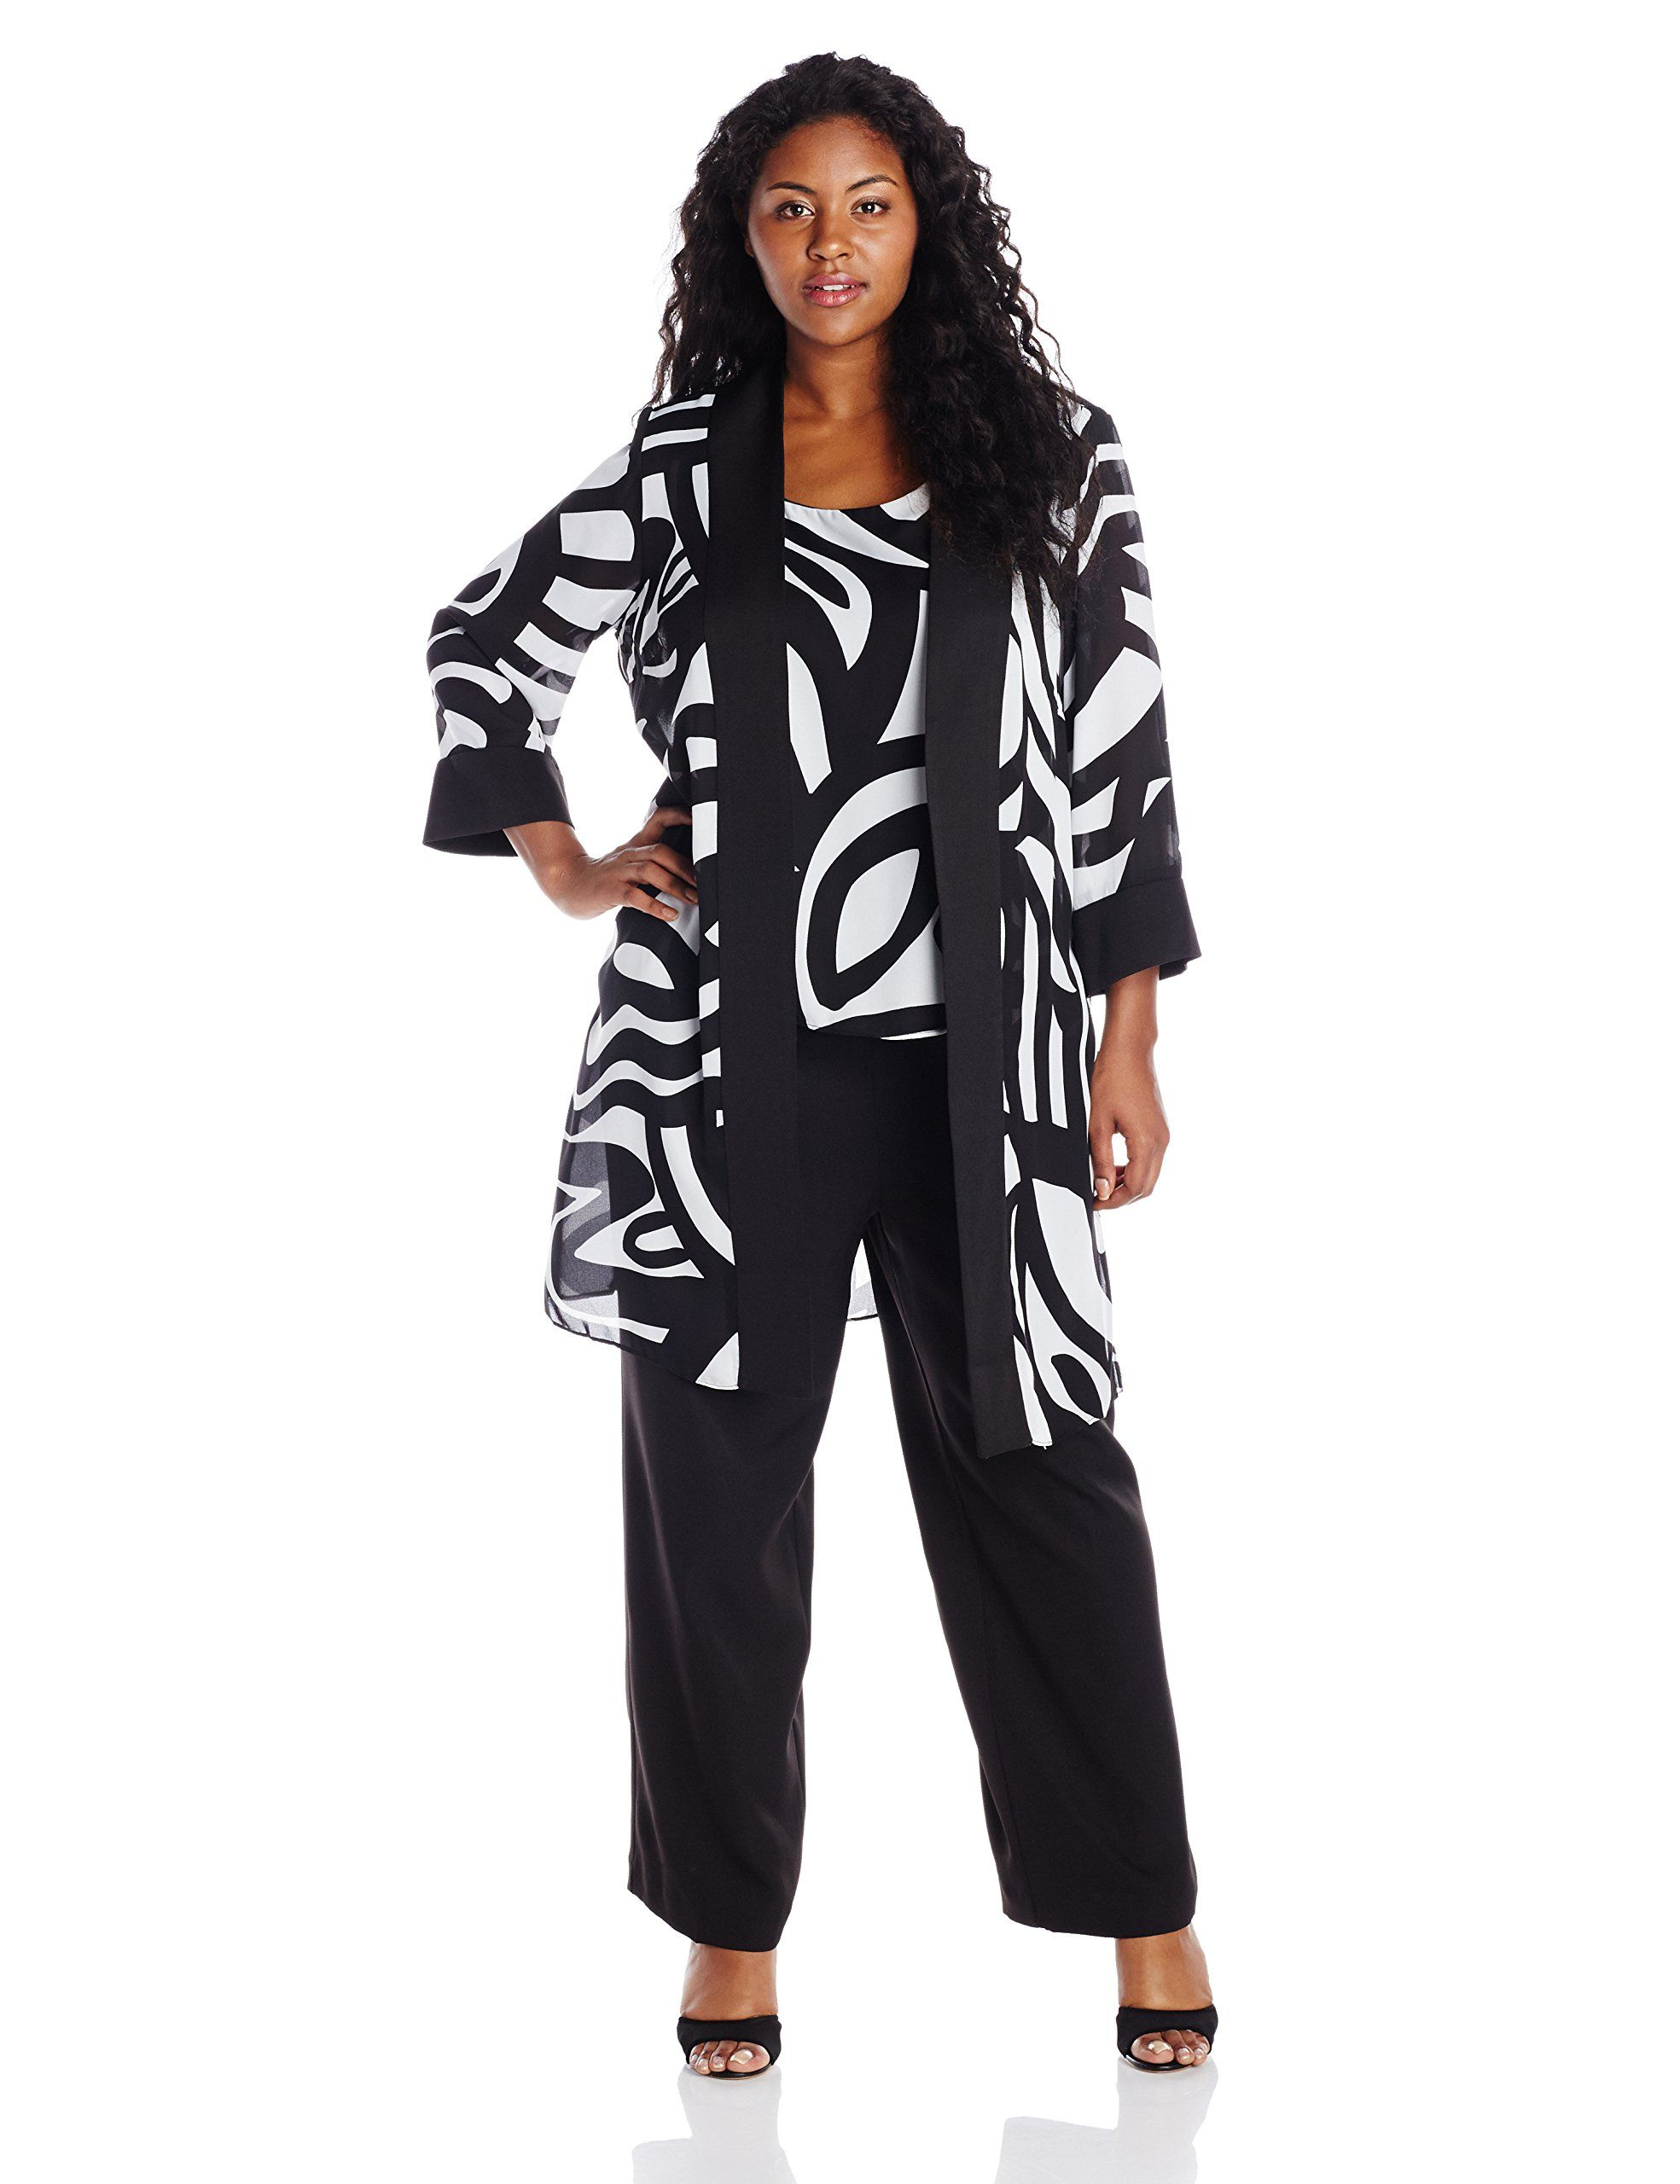 345832f7611 Dana Kay Women s Plus-Size 3 4 Sleeve Printed Pant 3 Piece Set with Jacket